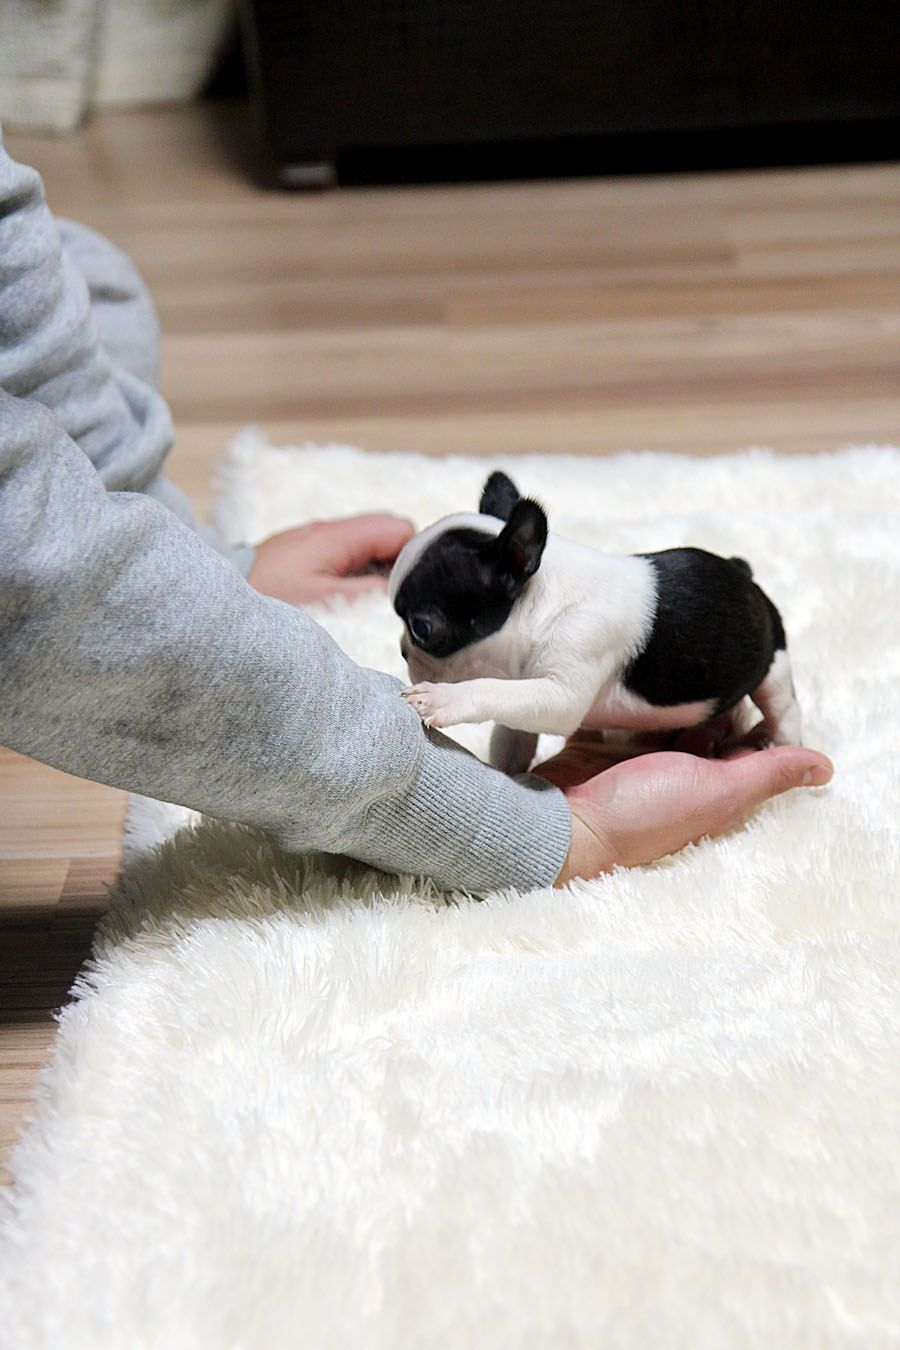 Teacup Puppy Teacup Puppy For Sale French Bulldog Bianco Teacup Puppies Bulldog Puppies French Bulldog Puppies